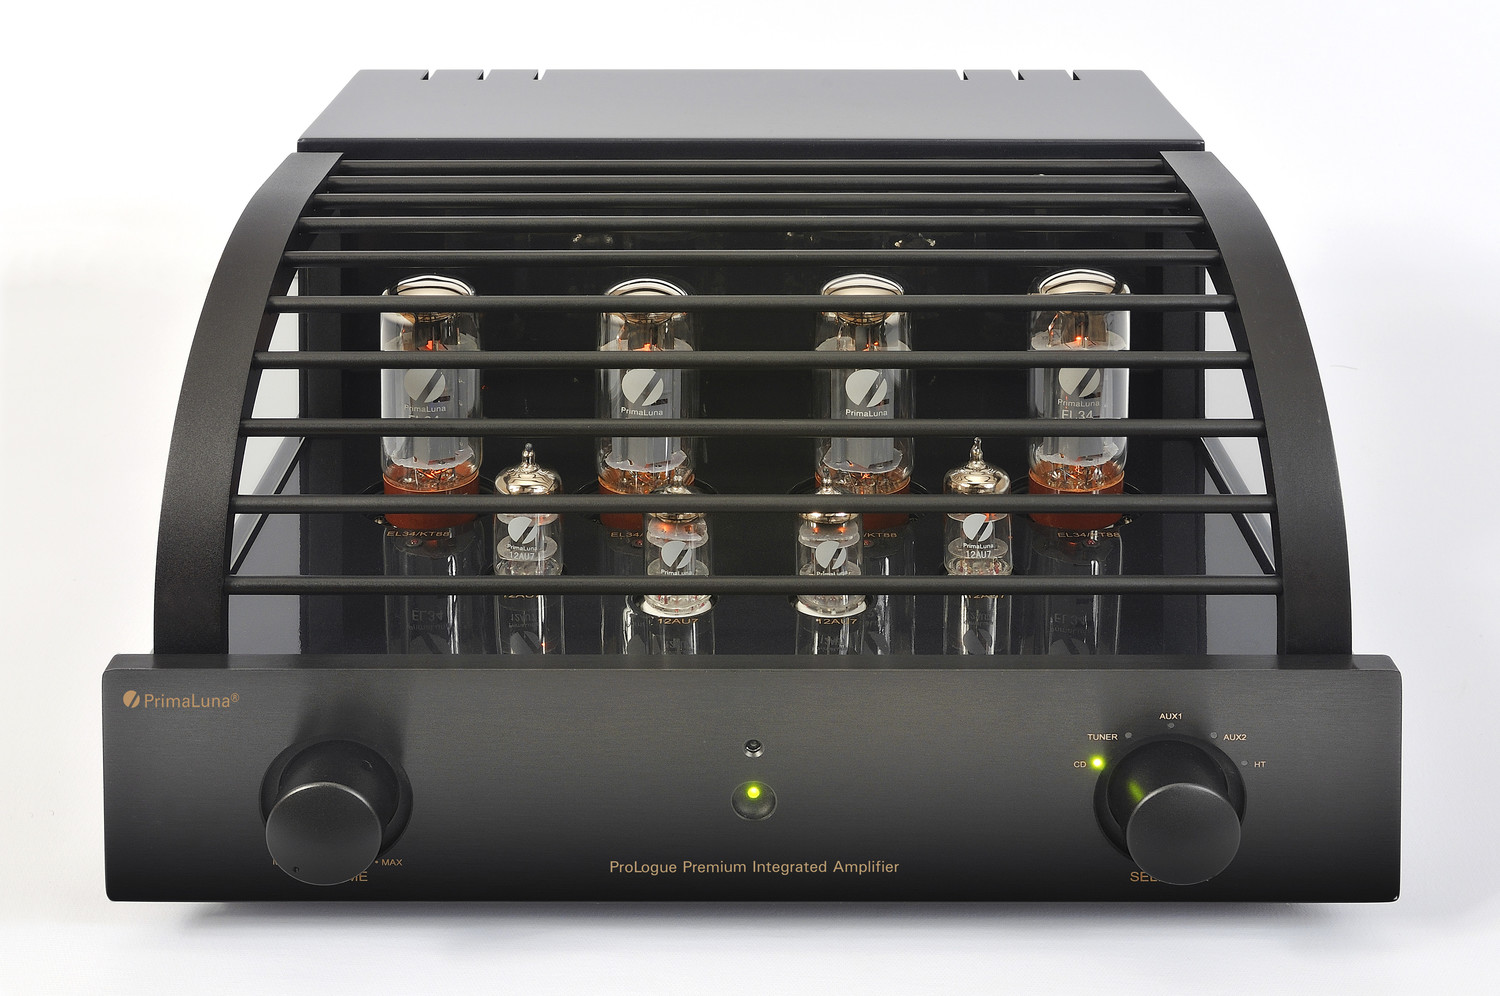 Prologue Premium Integrated Amplifier